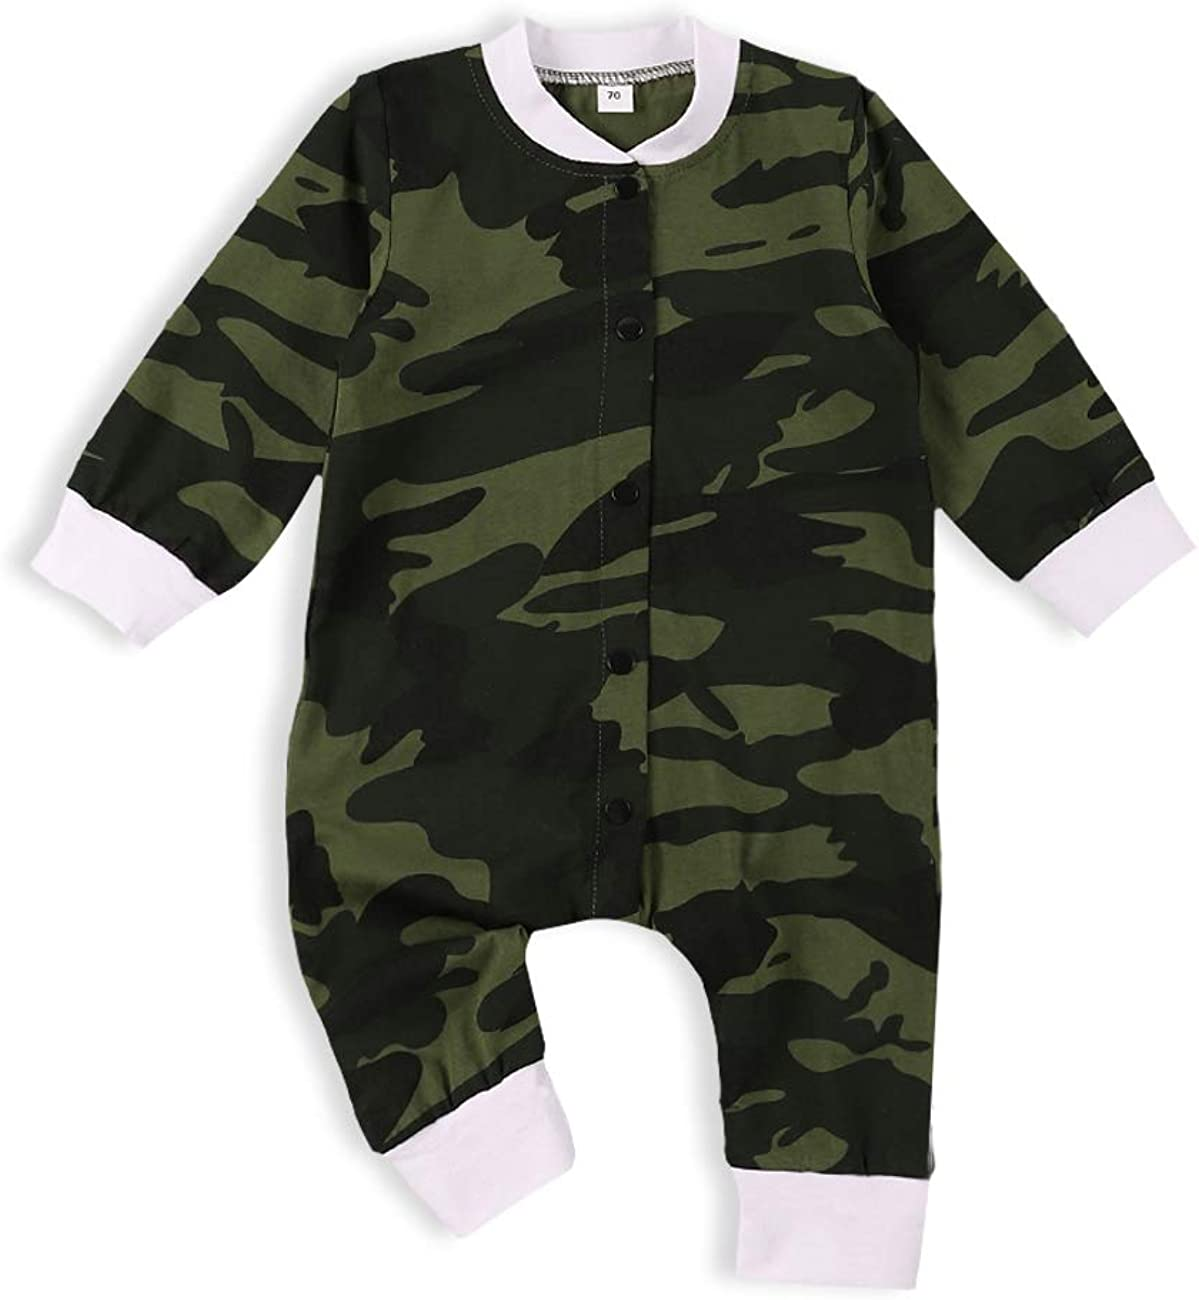 itkidboy Baby Boy Clothes Mama's Boy Camouflage Long Sleeve Romper Sweatshirt Tops Pants Outfit Set